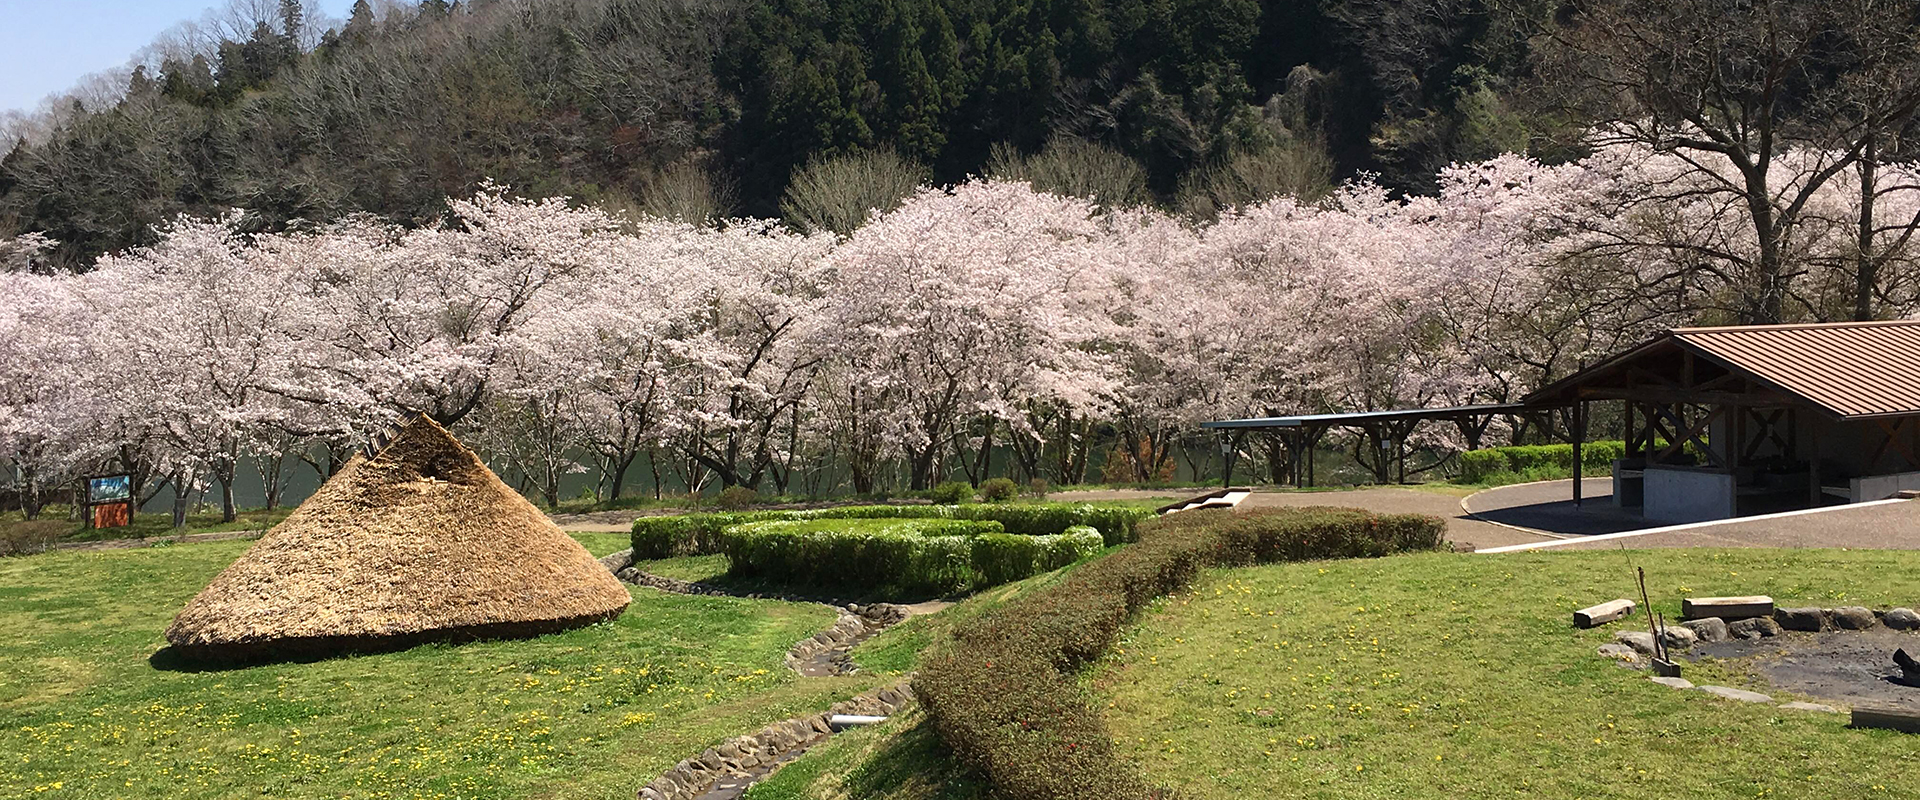 Cherry blossom viewing and camping amidst ancient ruins